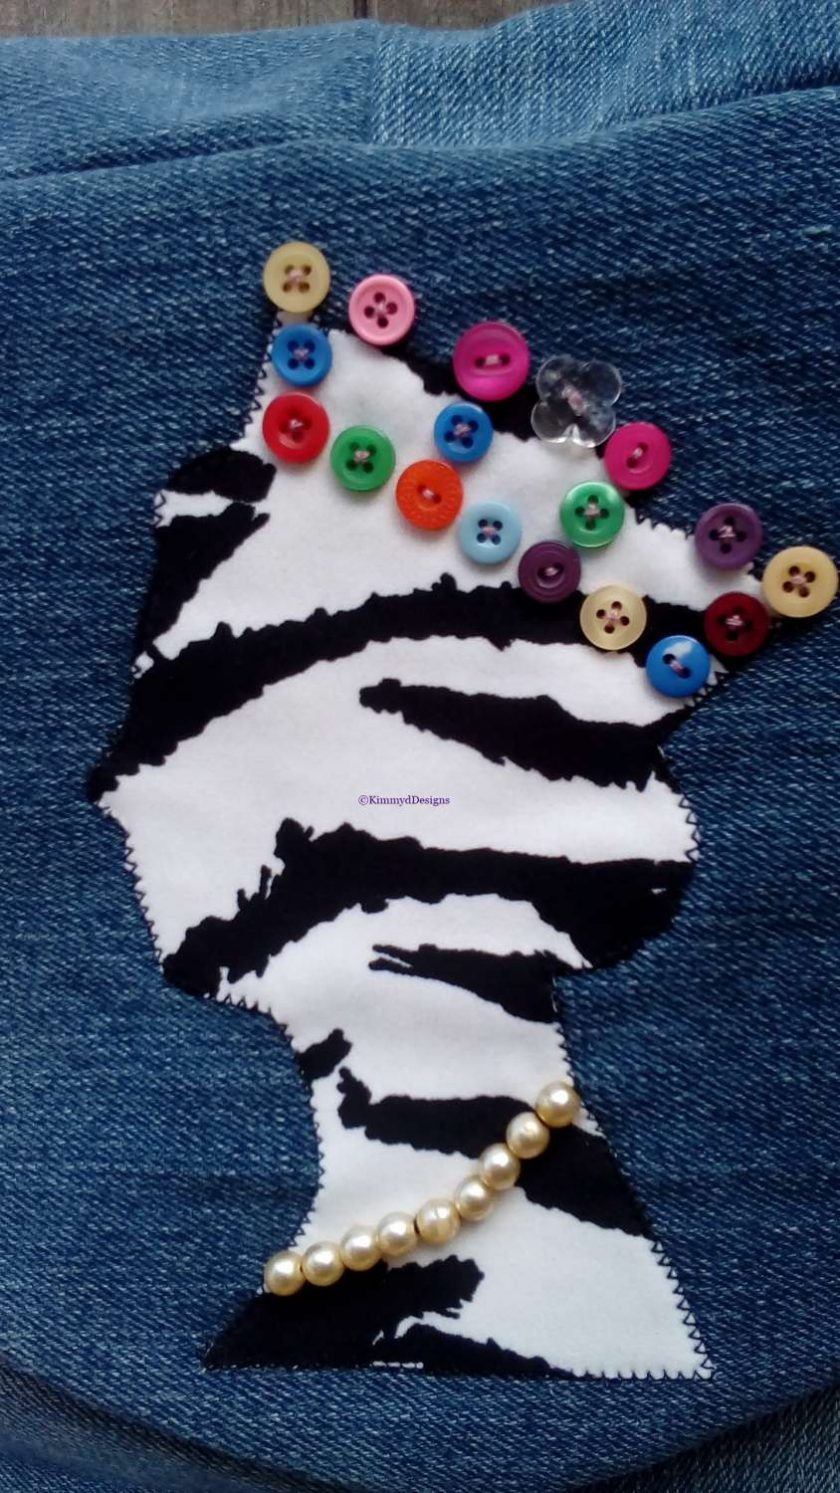 Queen Fully Lined Handbag Zebra Fabric & Button Crown FREE UK POSTAGE 2